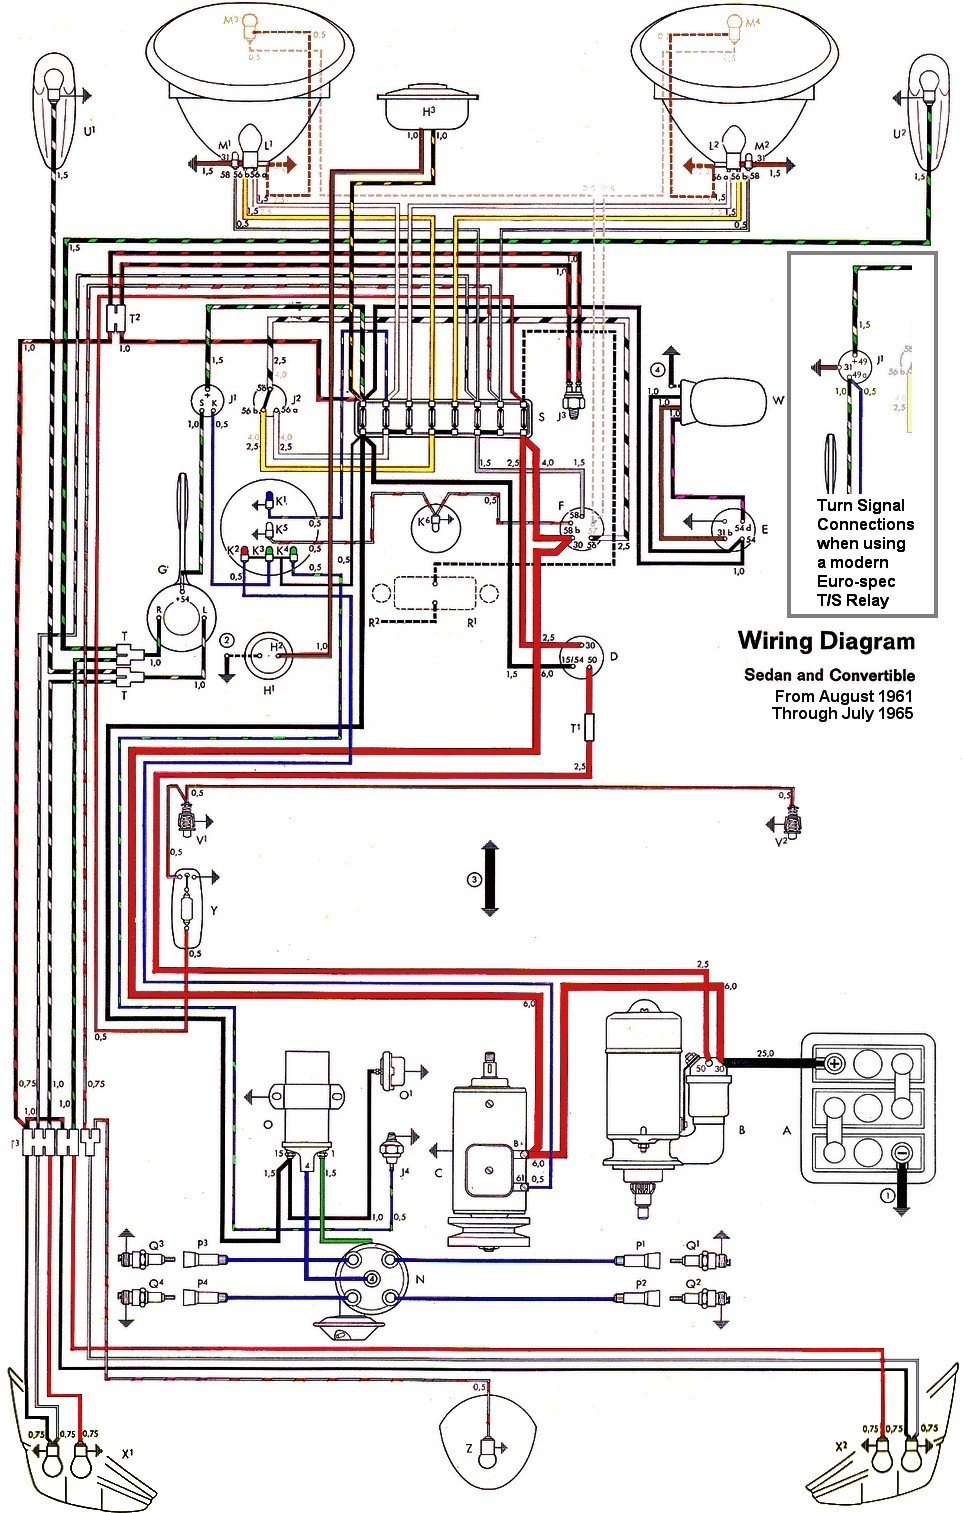 bug_62 65withinset wiring diagram vw beetle sedan and convertible 1961 1965 vw 1970 vw beetle wiring diagram at panicattacktreatment.co